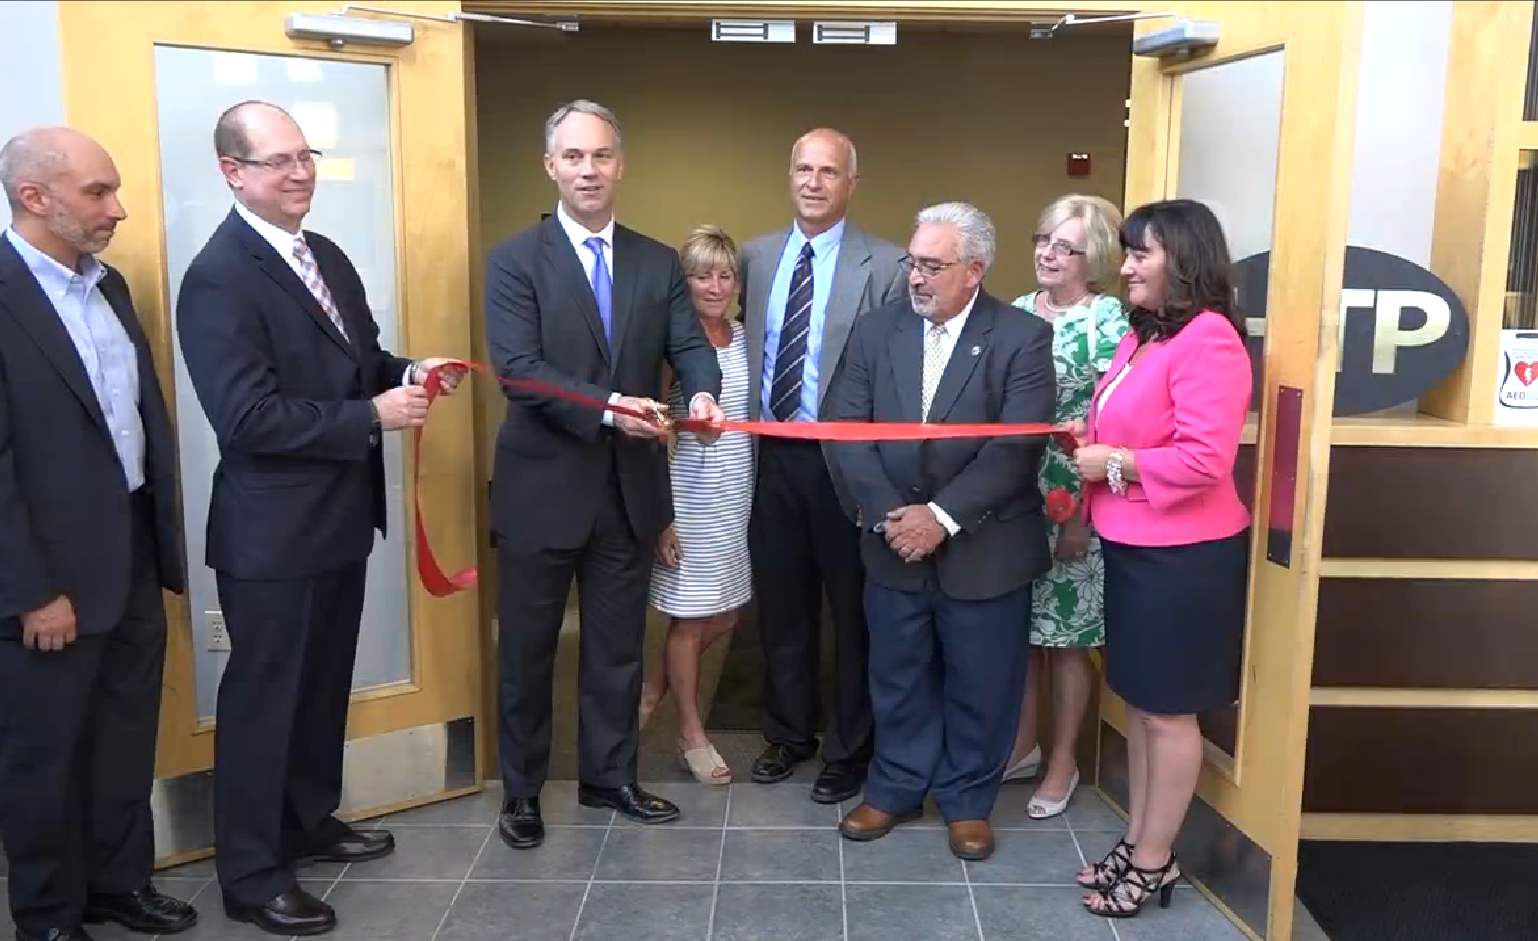 Htp S Grand Opening Celebration With Mayor And Staff